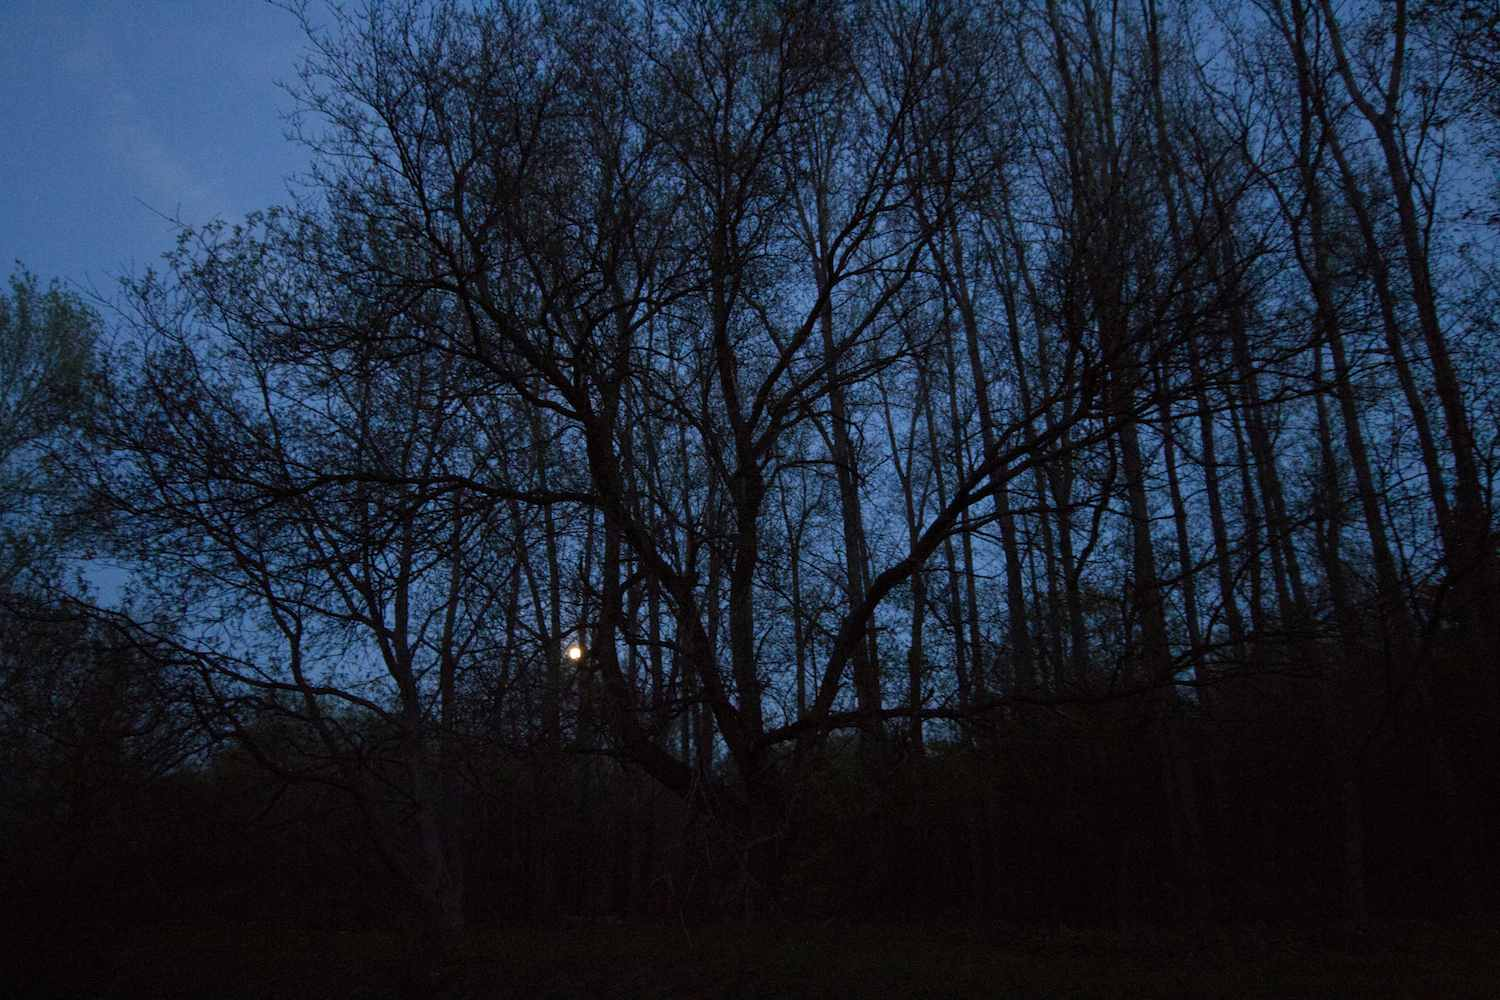 Trees in the Darkness